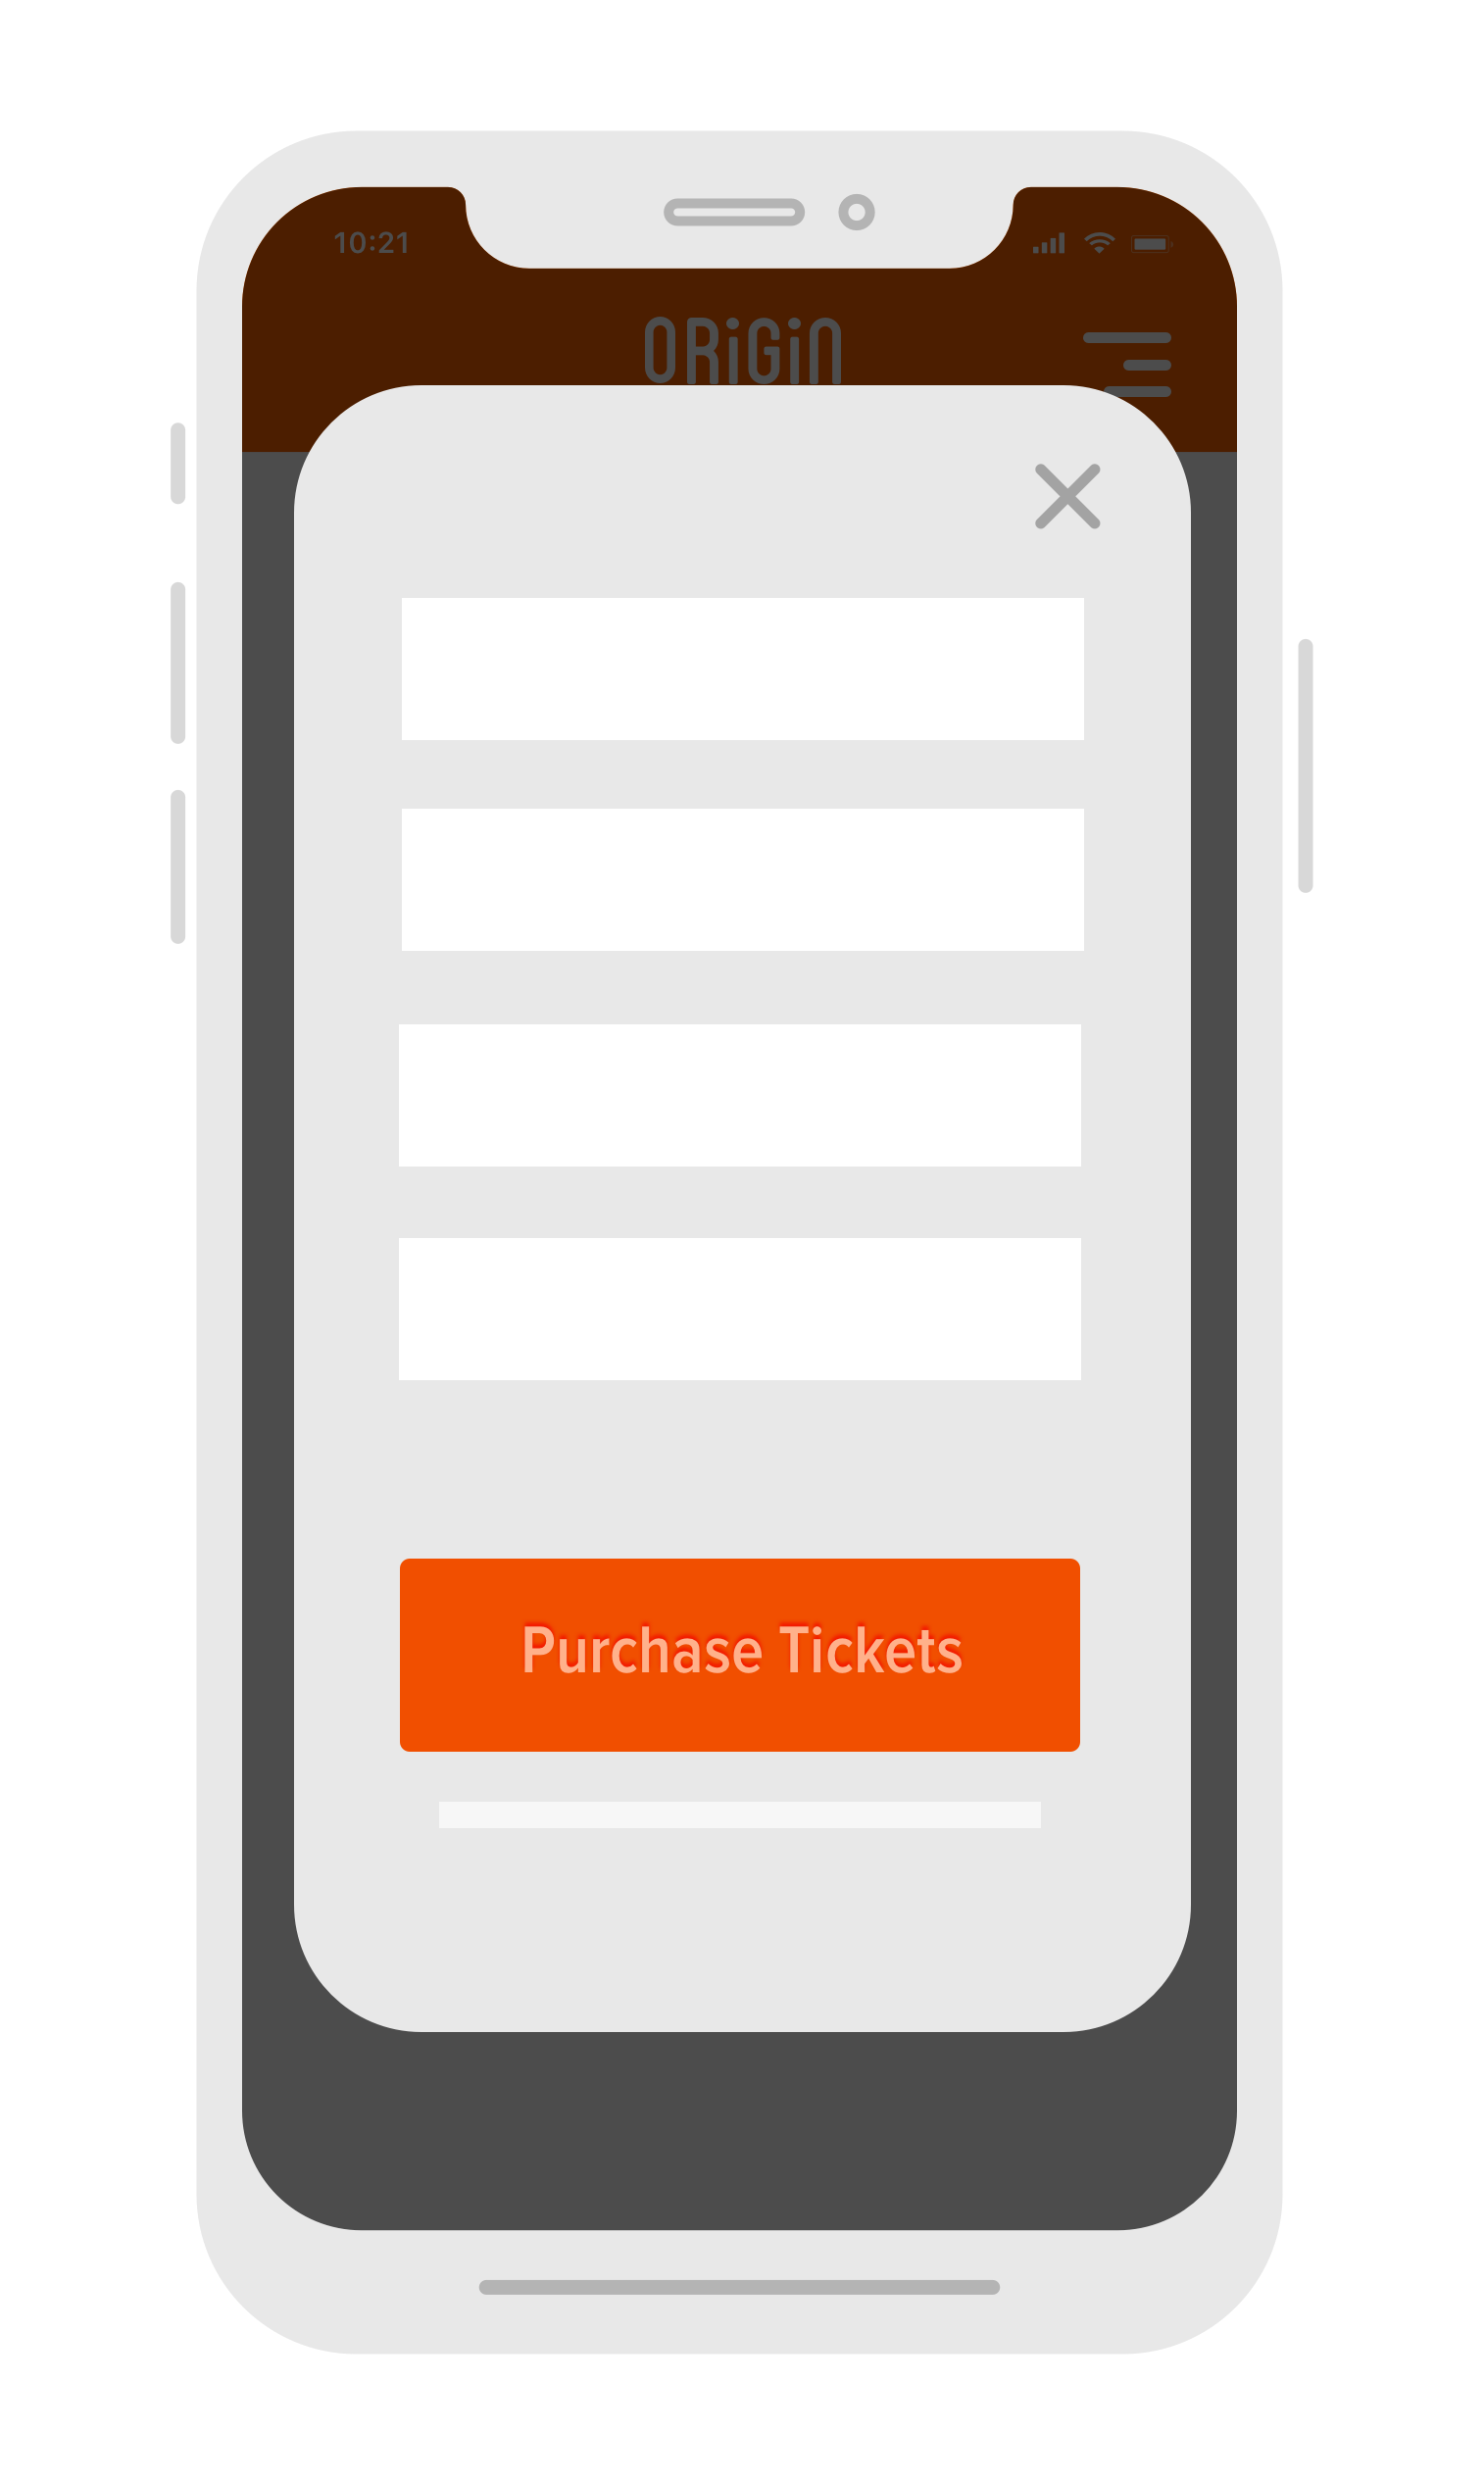 mobile ux guidelines